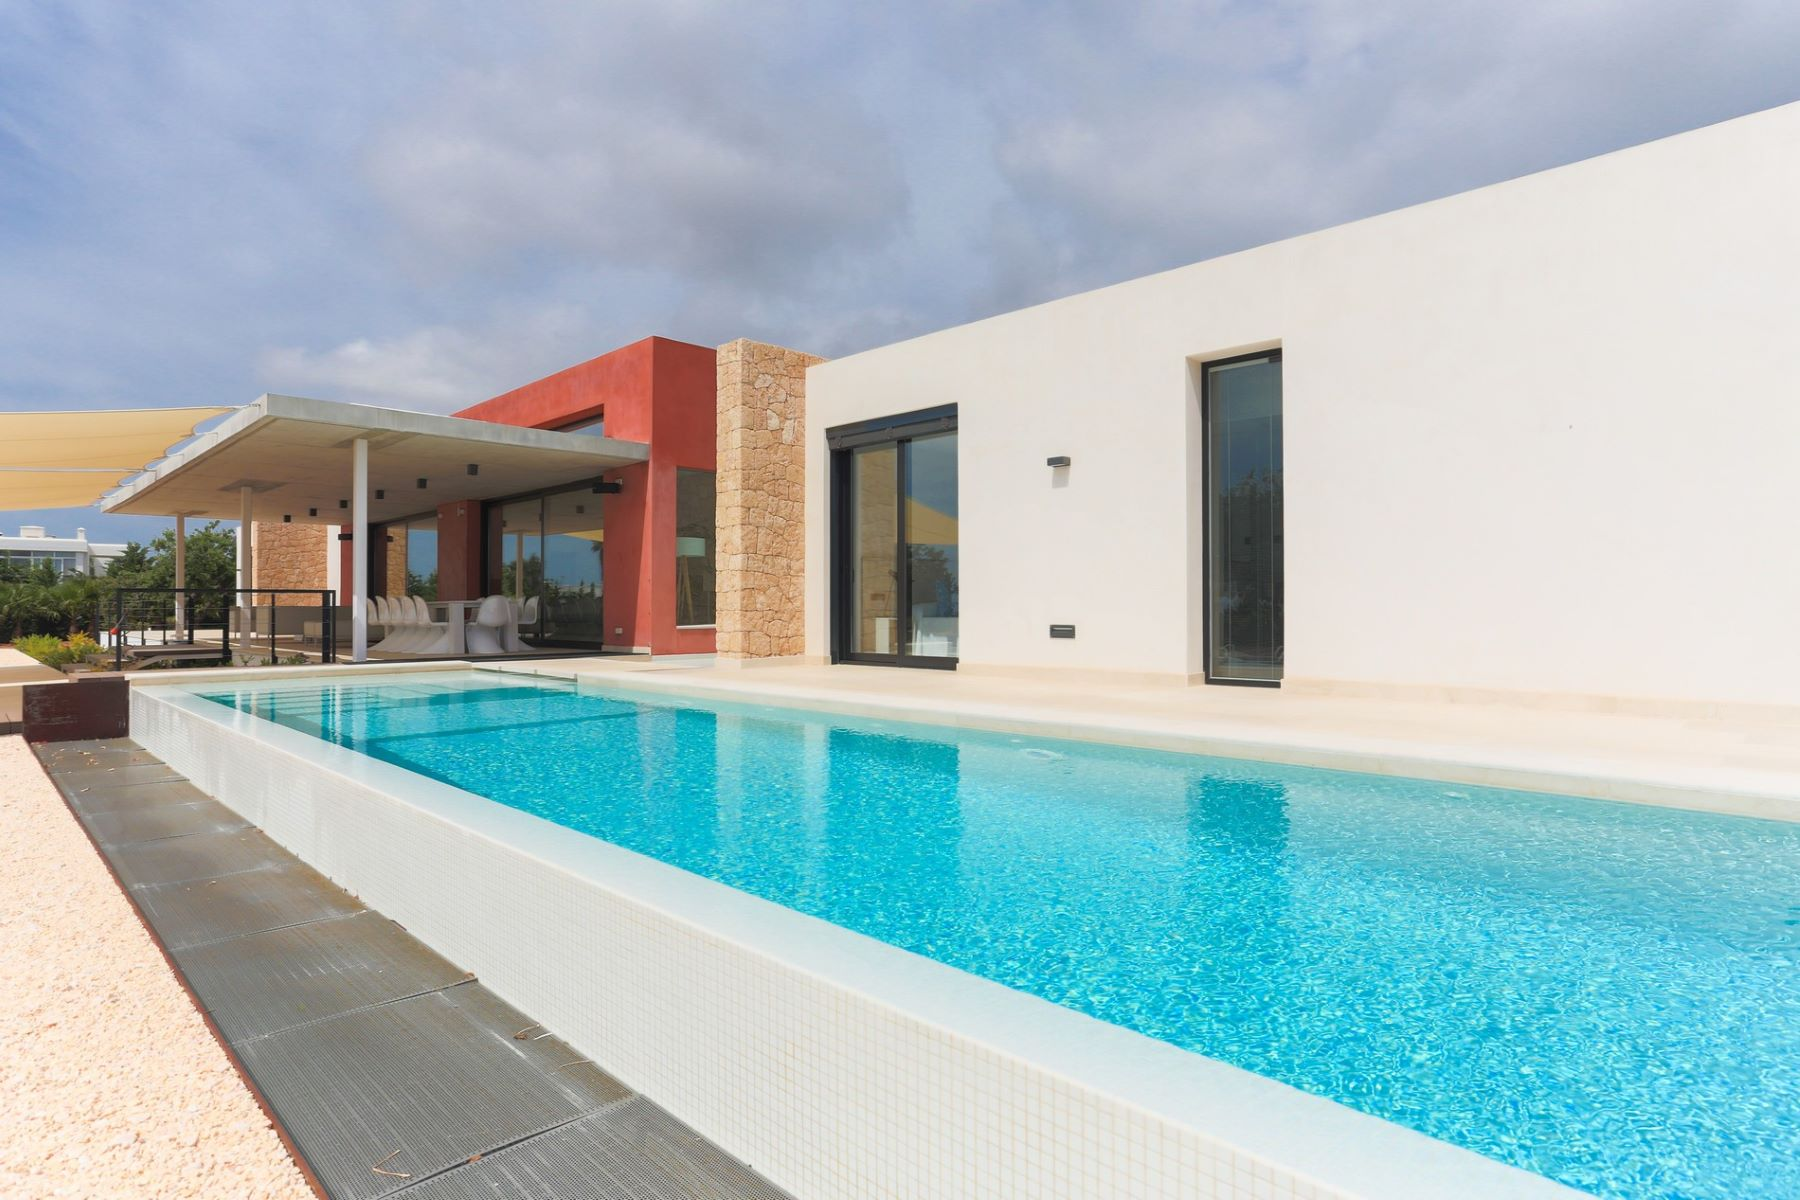 Single Family Home for Sale at Modern Luxury Villa On A Plot With Sea Views Ibiza, Balearic Islands, Spain